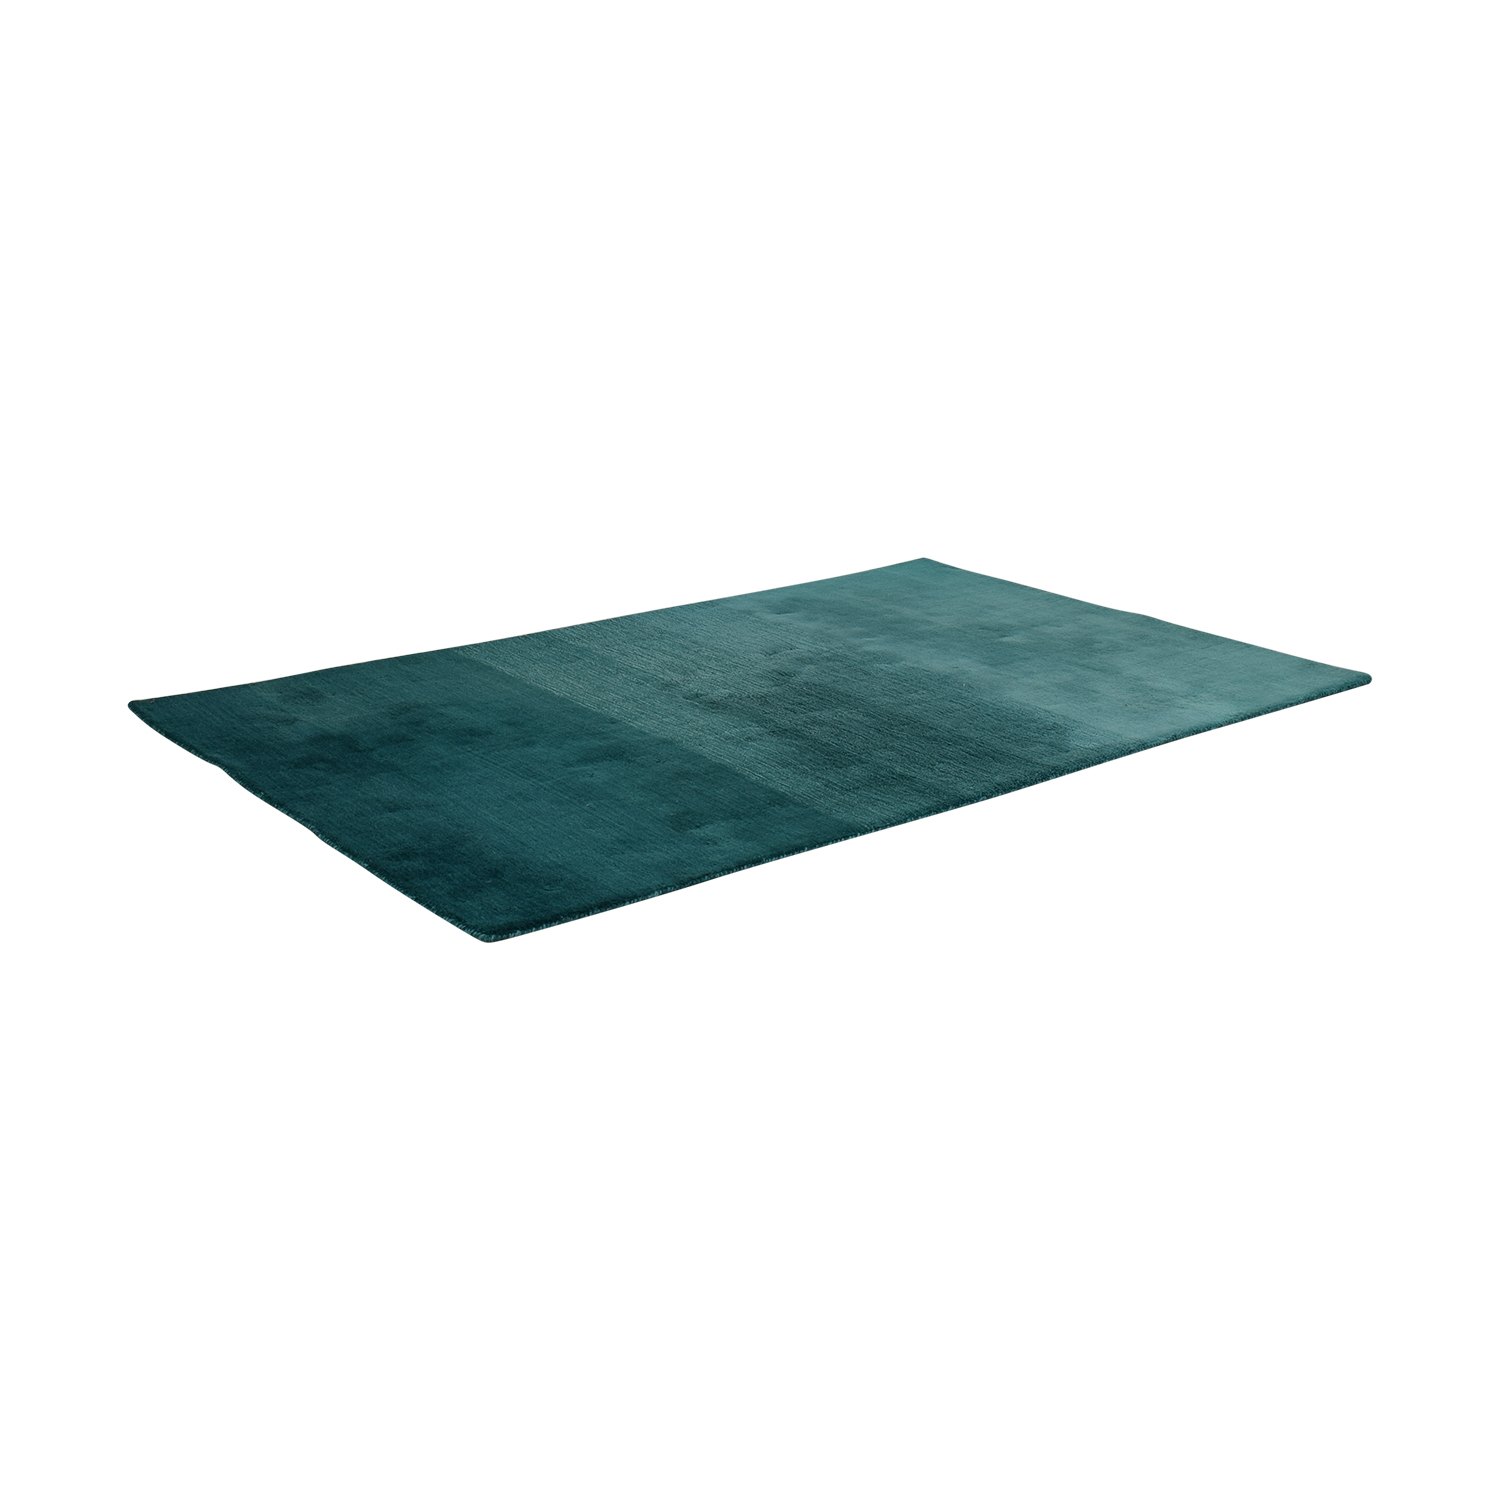 CB2 CB2 Ombre Teal Rug coupon